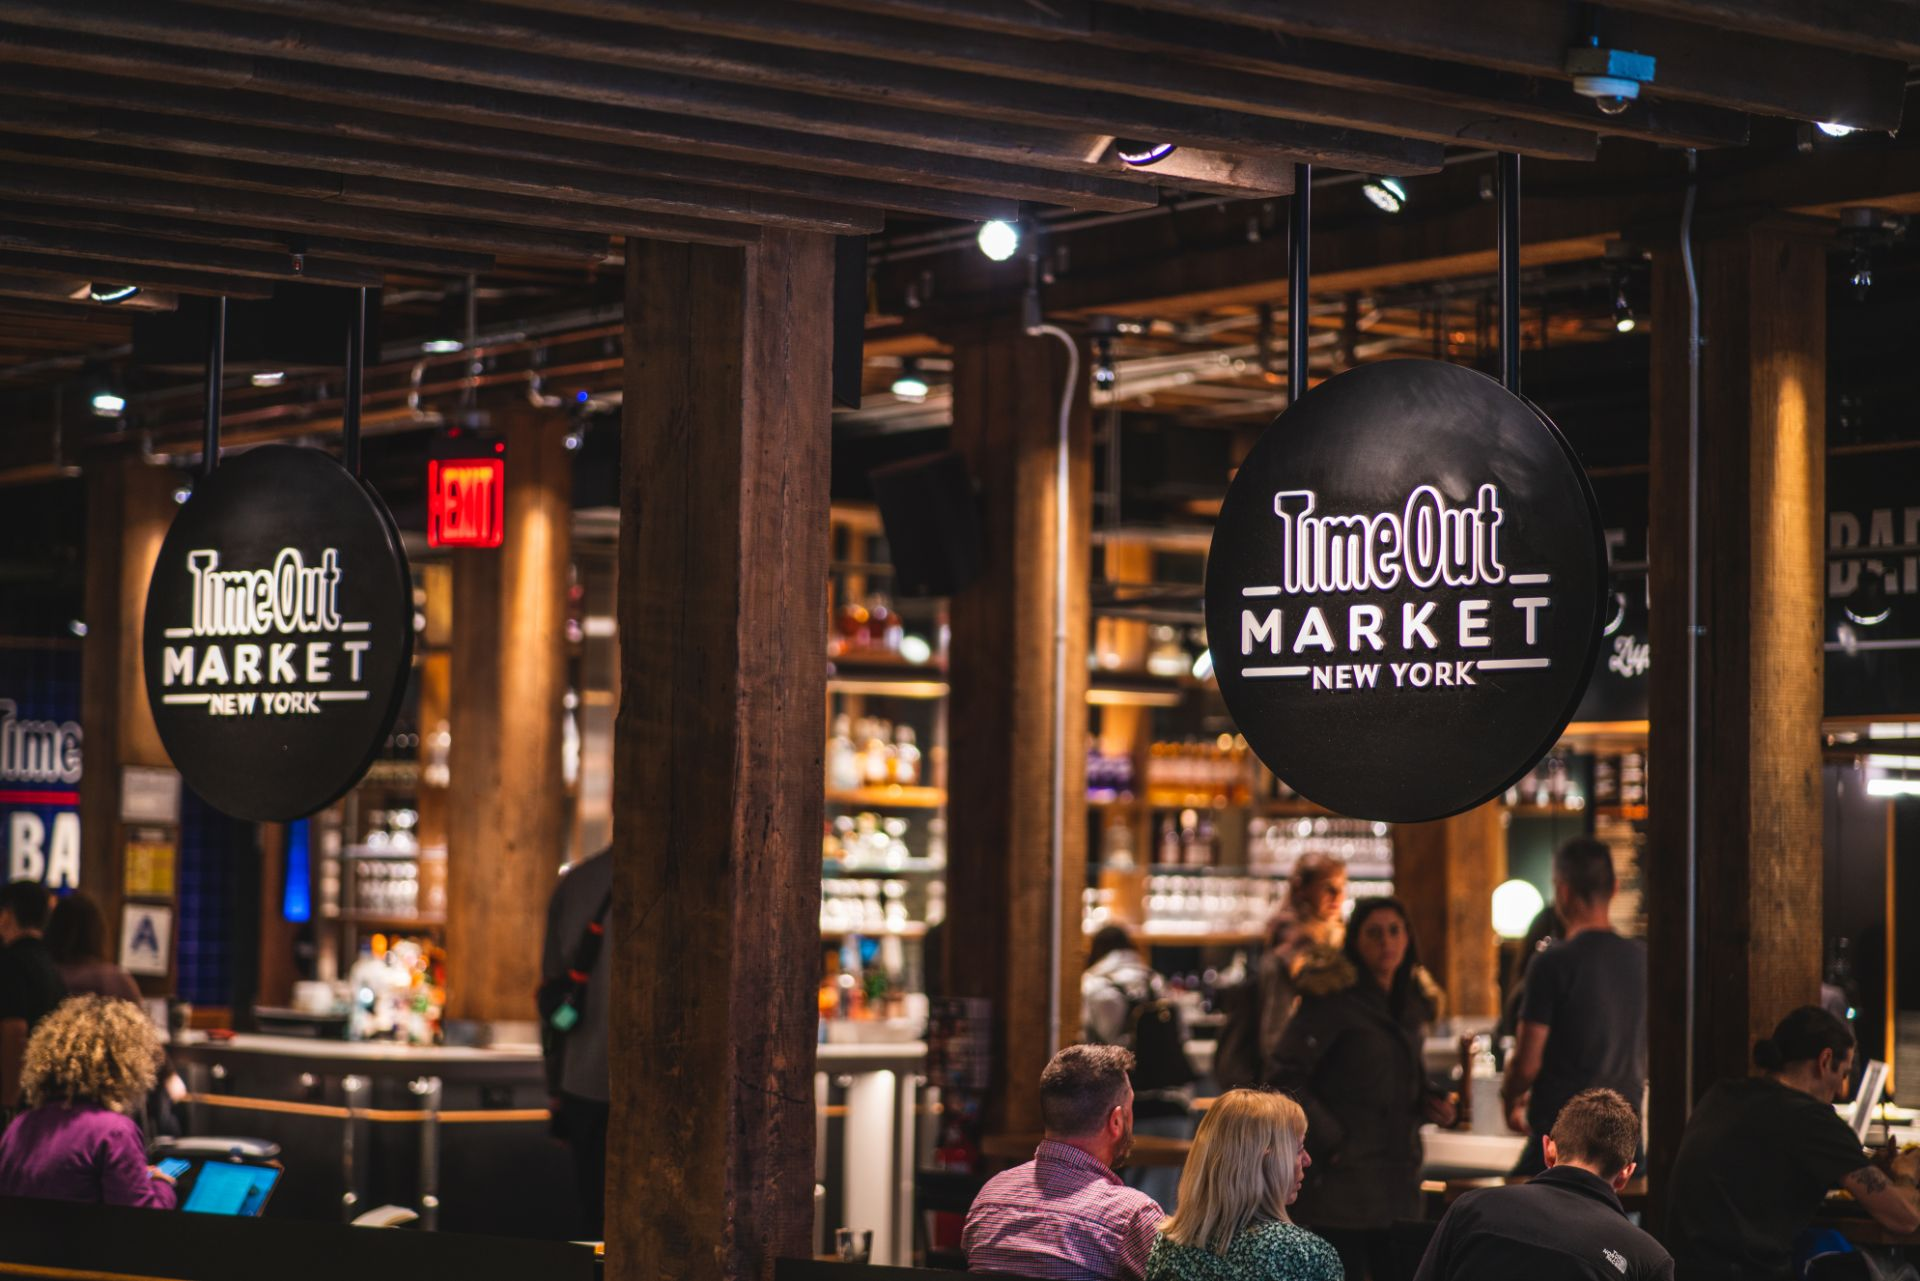 bars-and-street-food-inside-time-out-market-new-york-in-dumbo-brooklyn